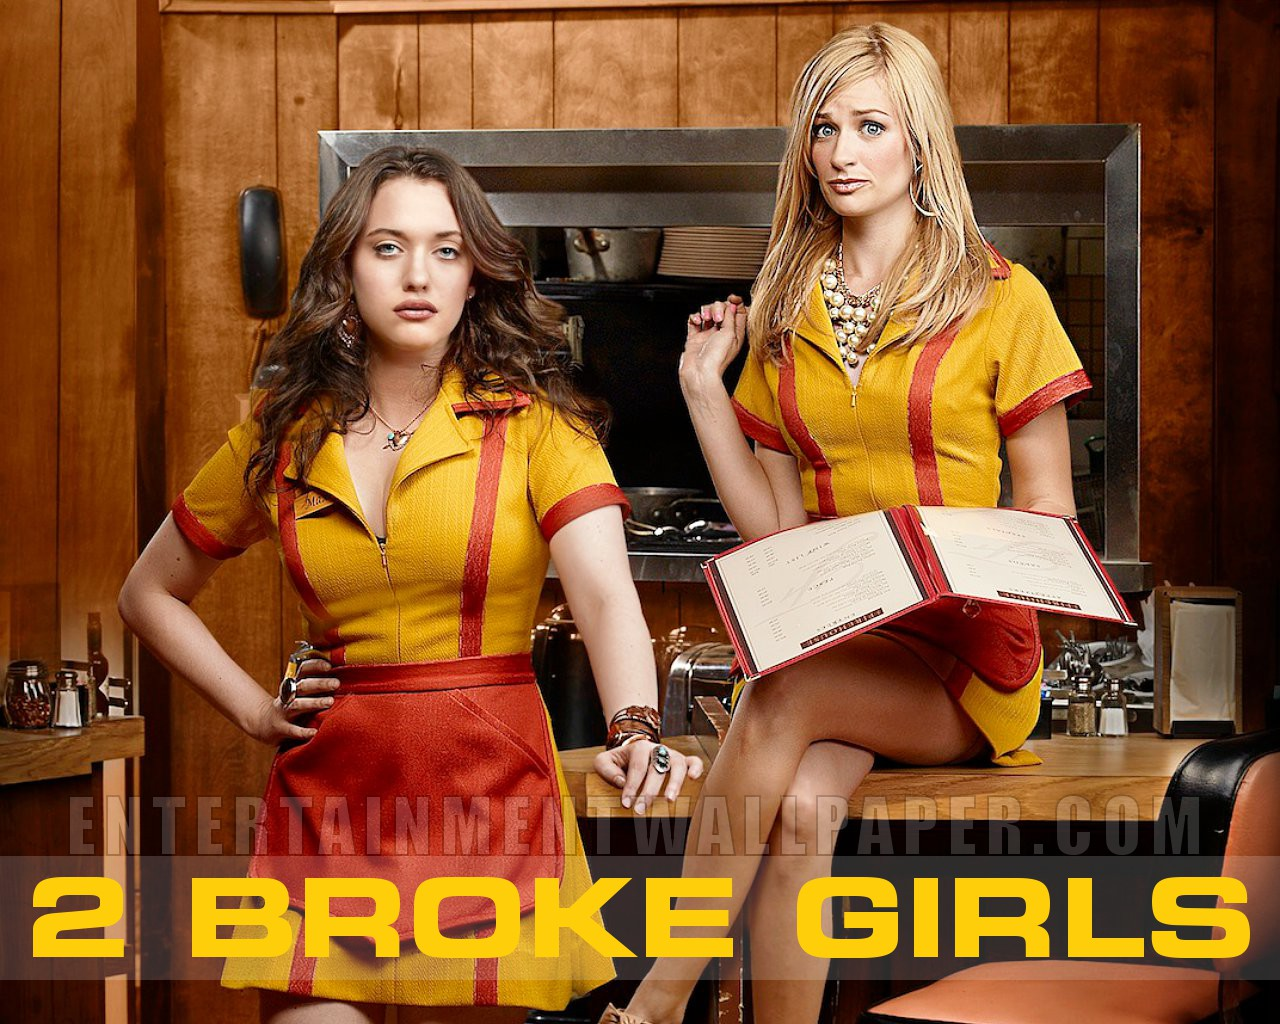 2broke Girls